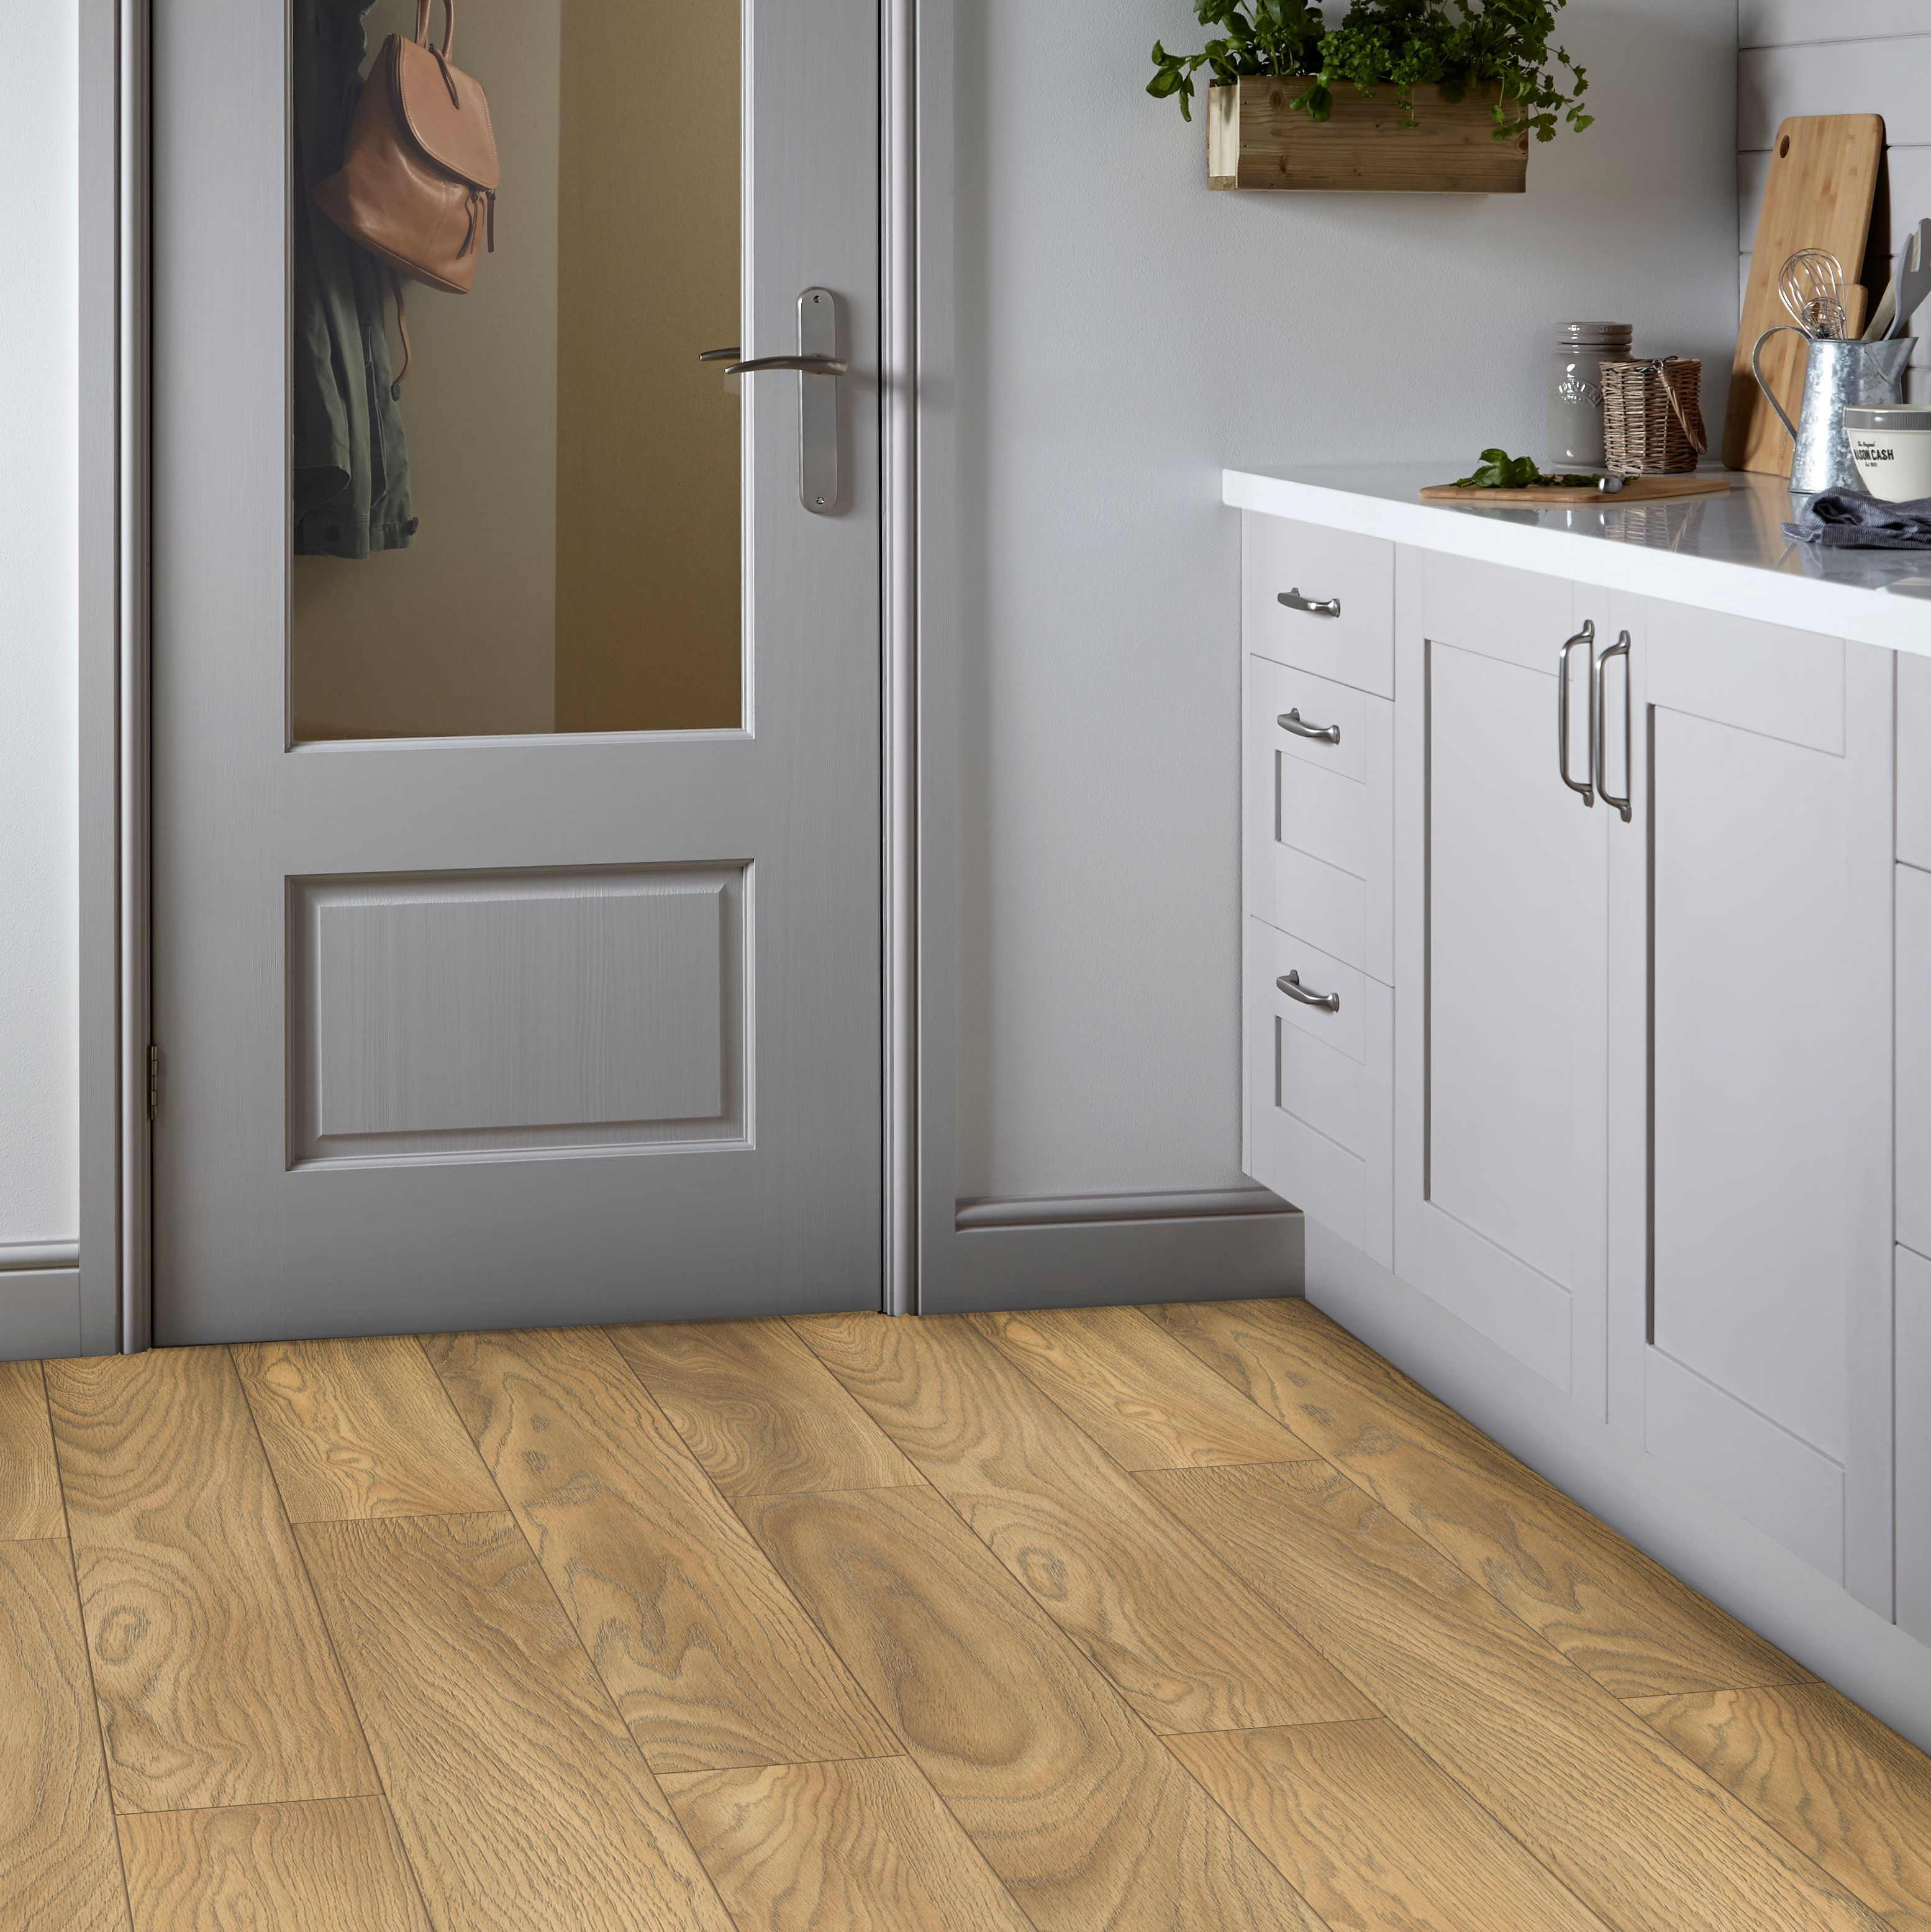 Sirente Oak Effect Laminate Flooring 1.74m² Pack